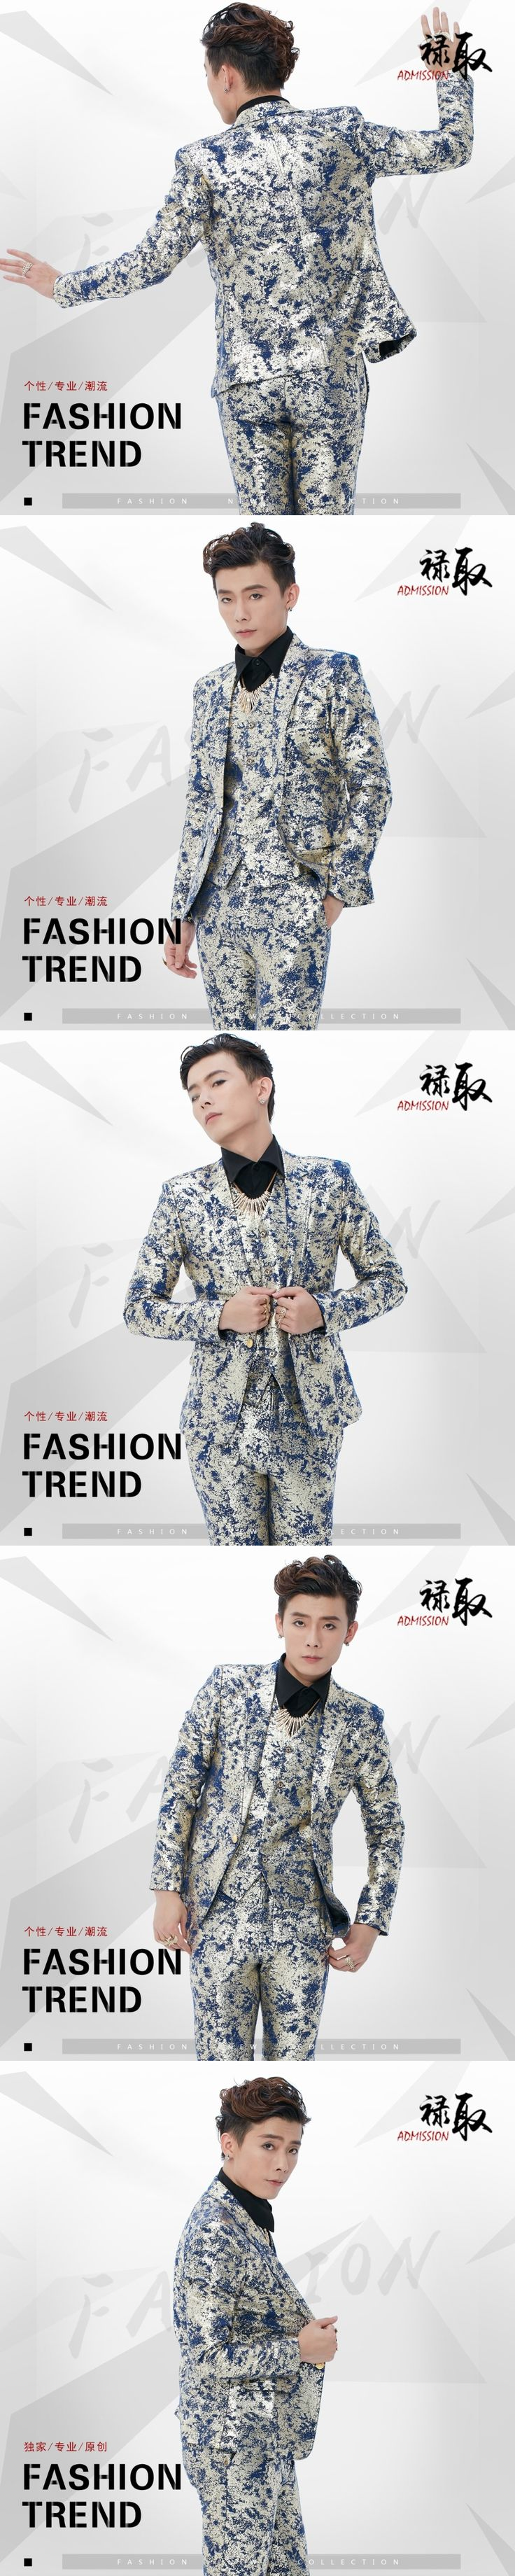 S-5XL 2017 fashion formal dress Men's clothing new DJ stage slim Suit jacket coats Men Casual plus size singer costumes Suits